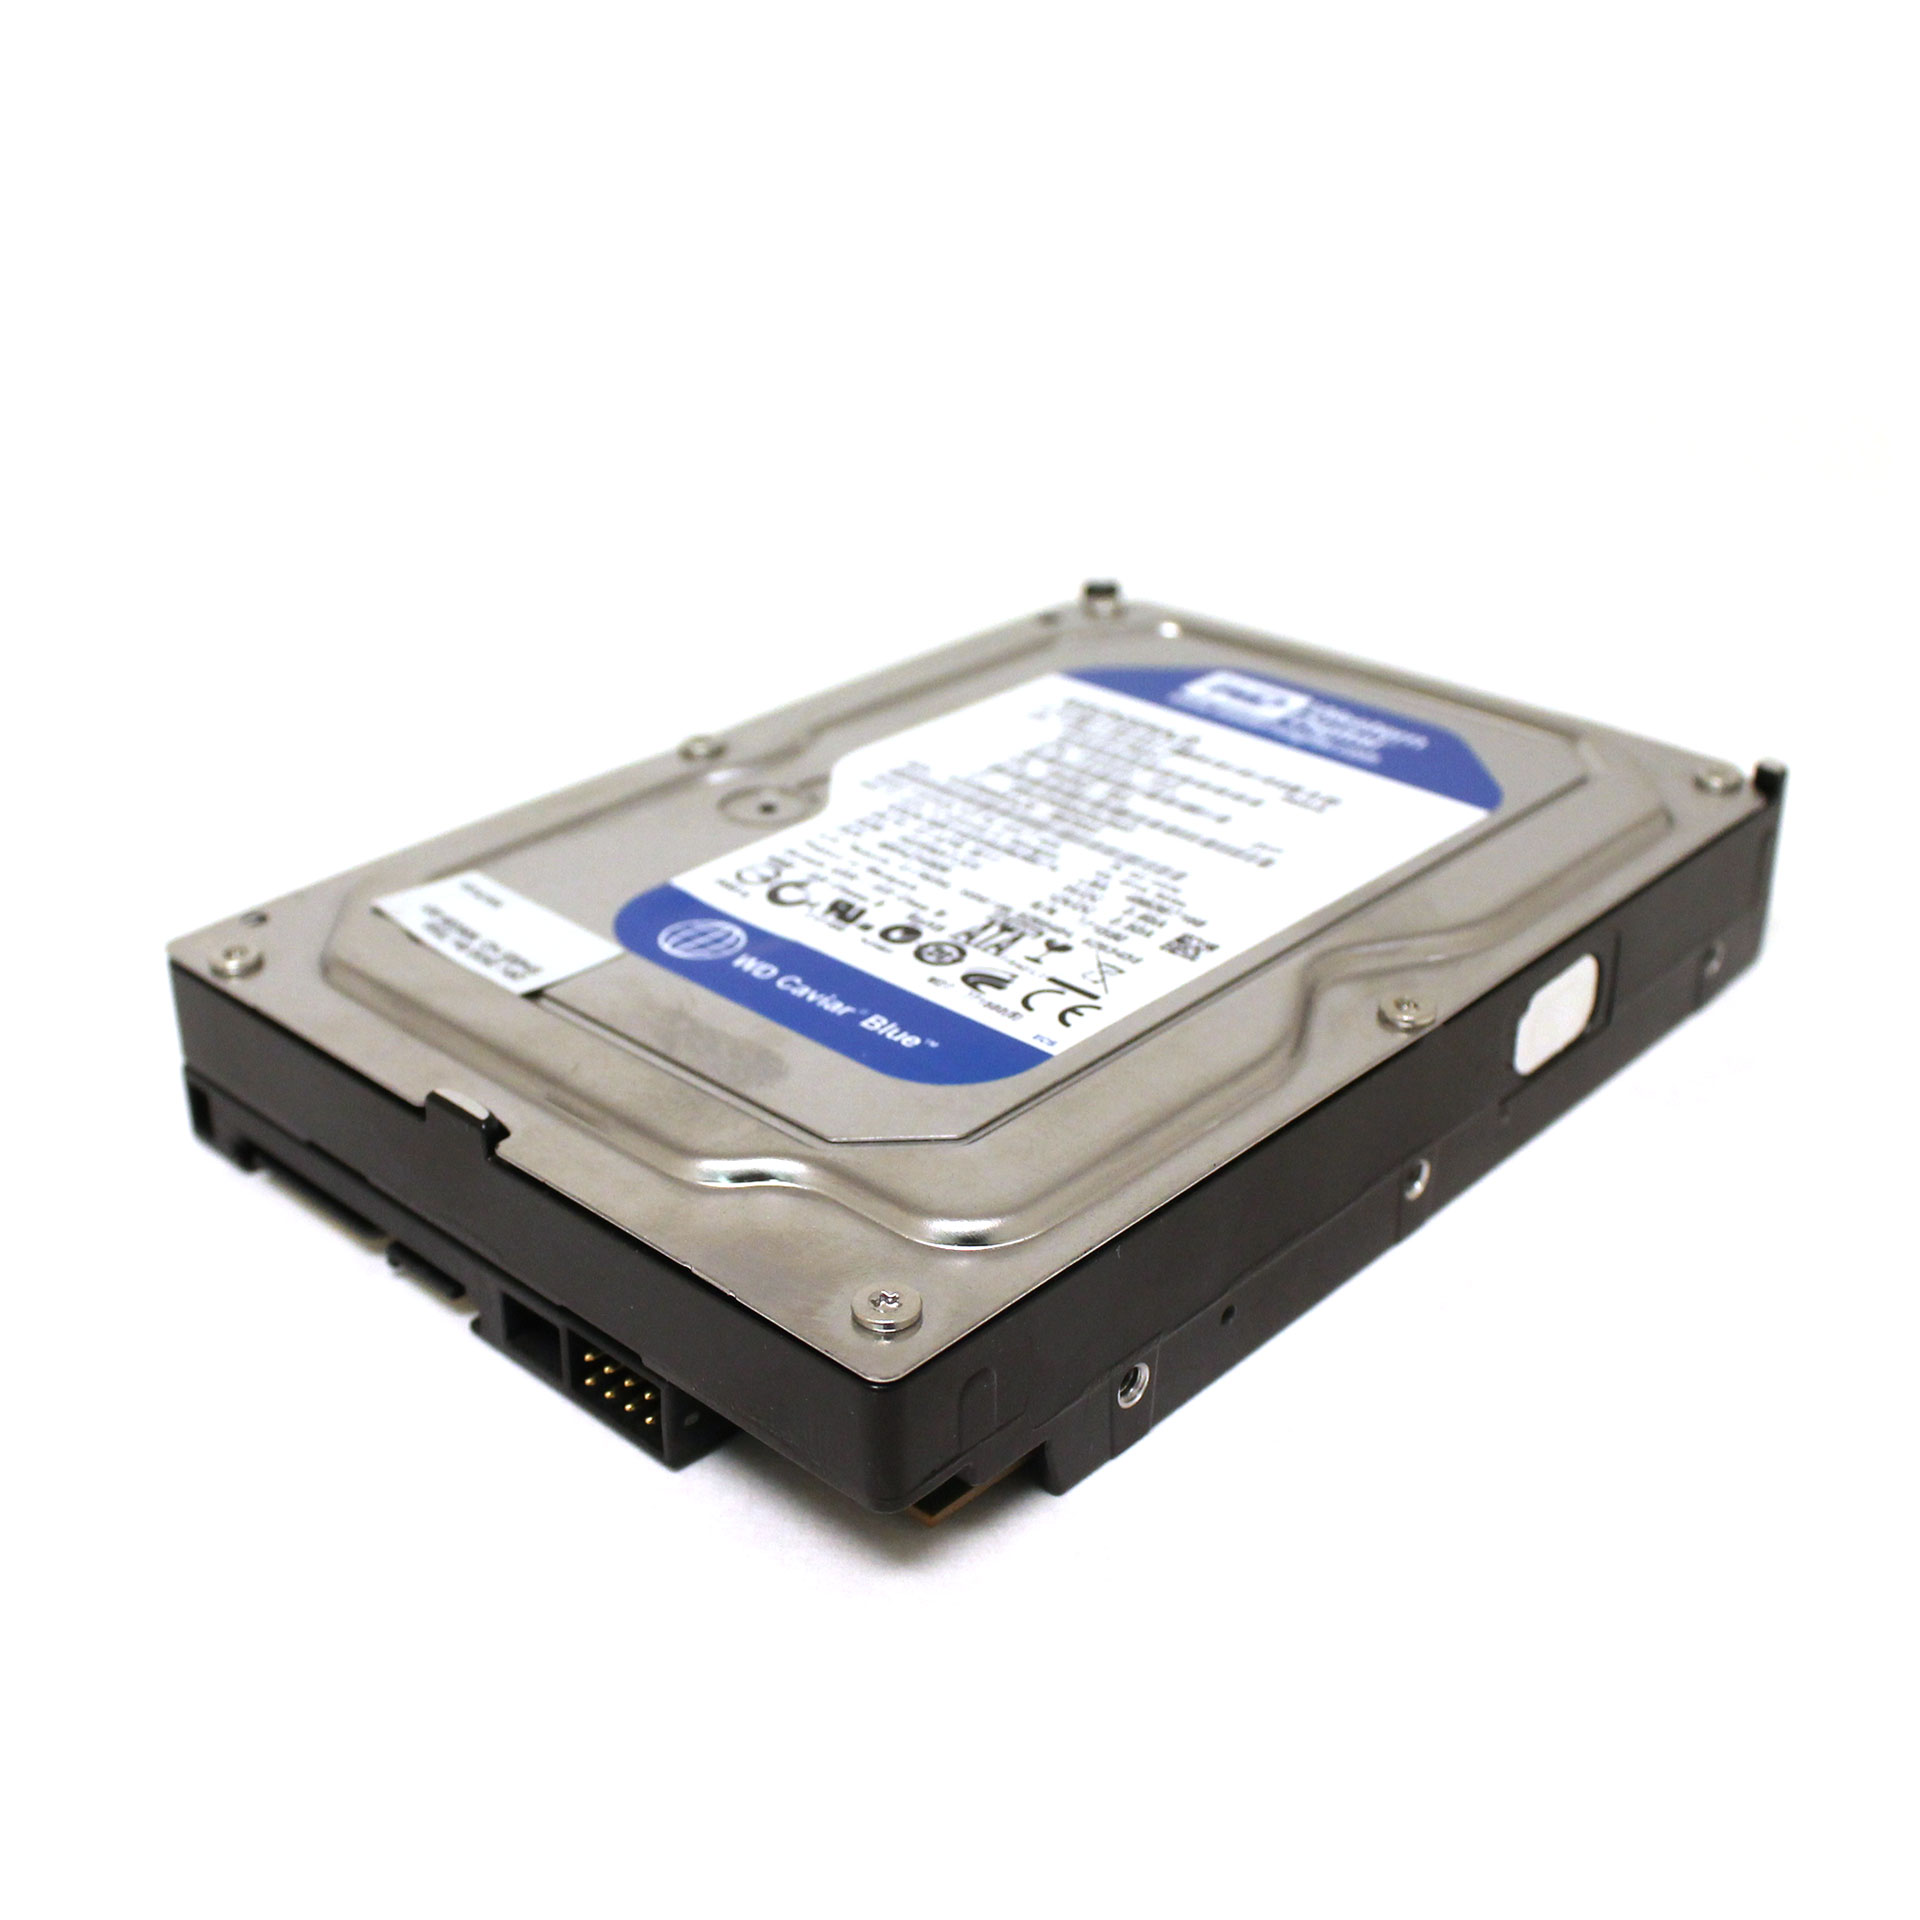 Western Digital Blue 250GB WD2500AAJS-60Z0A0 484053-003 508028